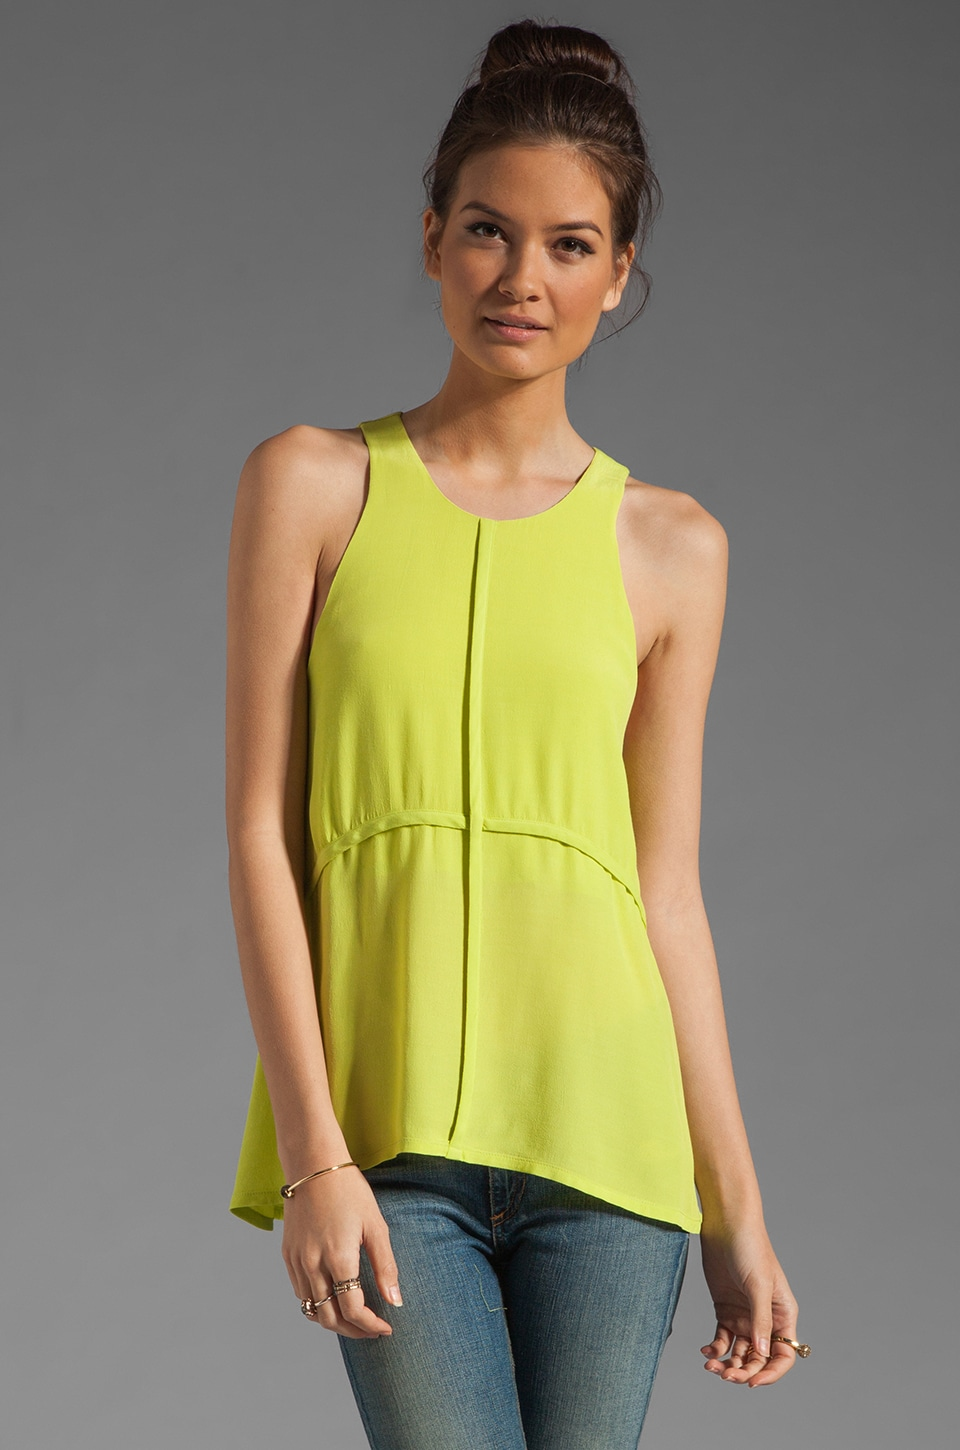 C/MEO Warpaint Tee in Lime Punch